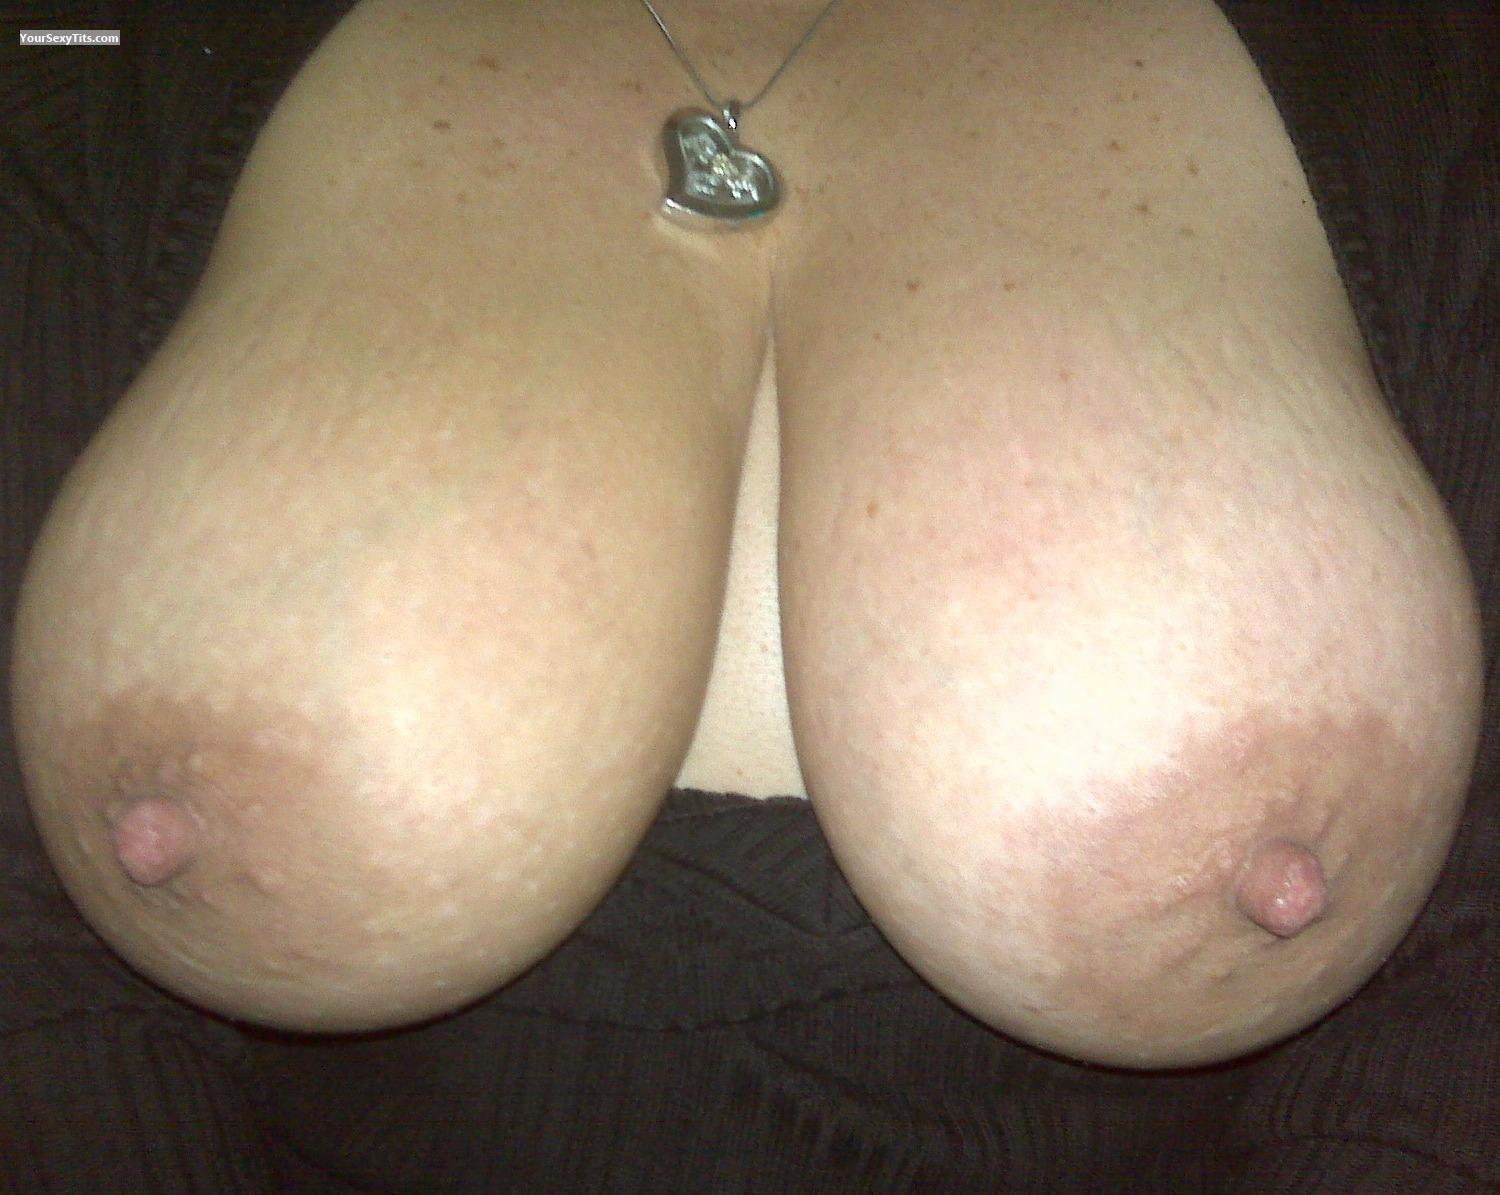 Tit Flash: Big Tits - Littlecrazy1 from United States